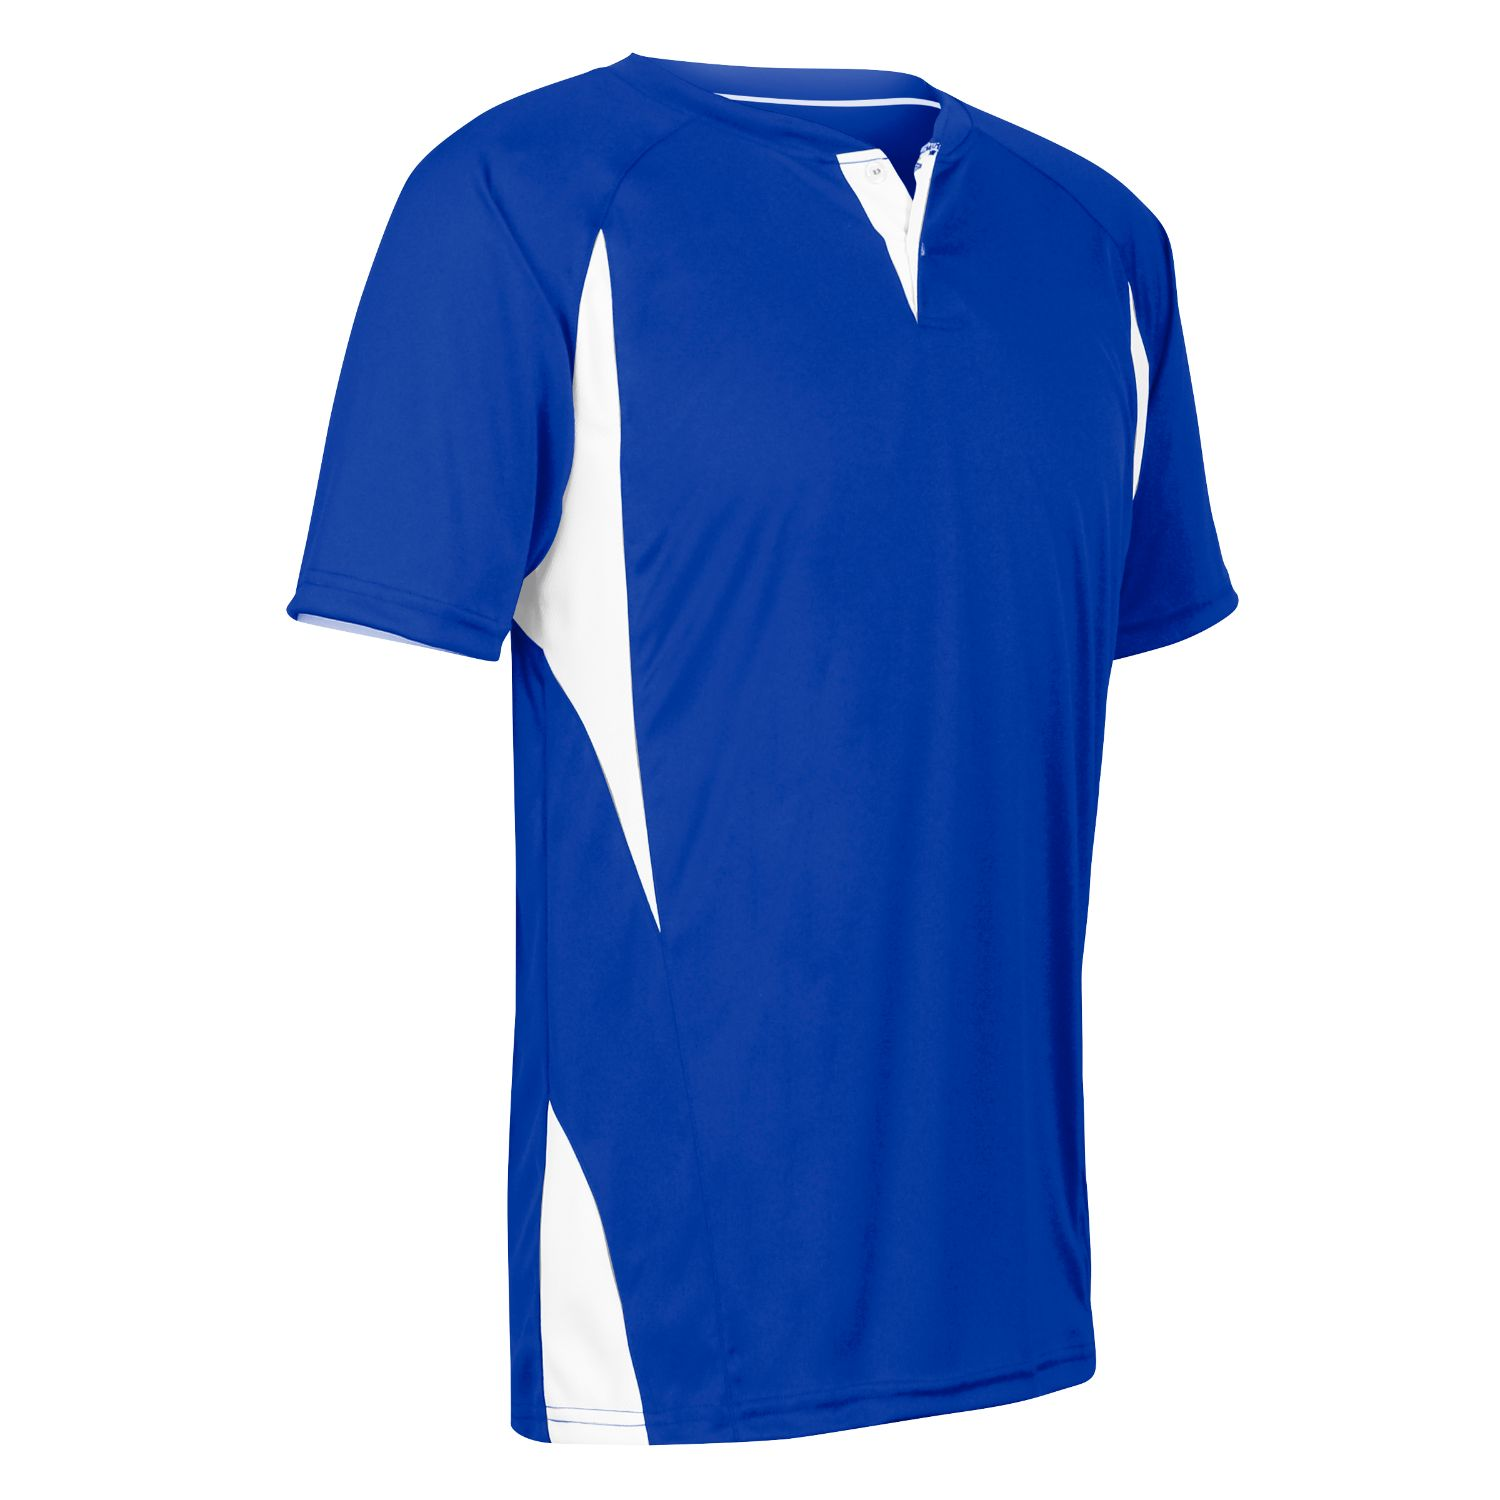 Champro Adult 2 Button Wild Card Jersey Royal Blue White MED